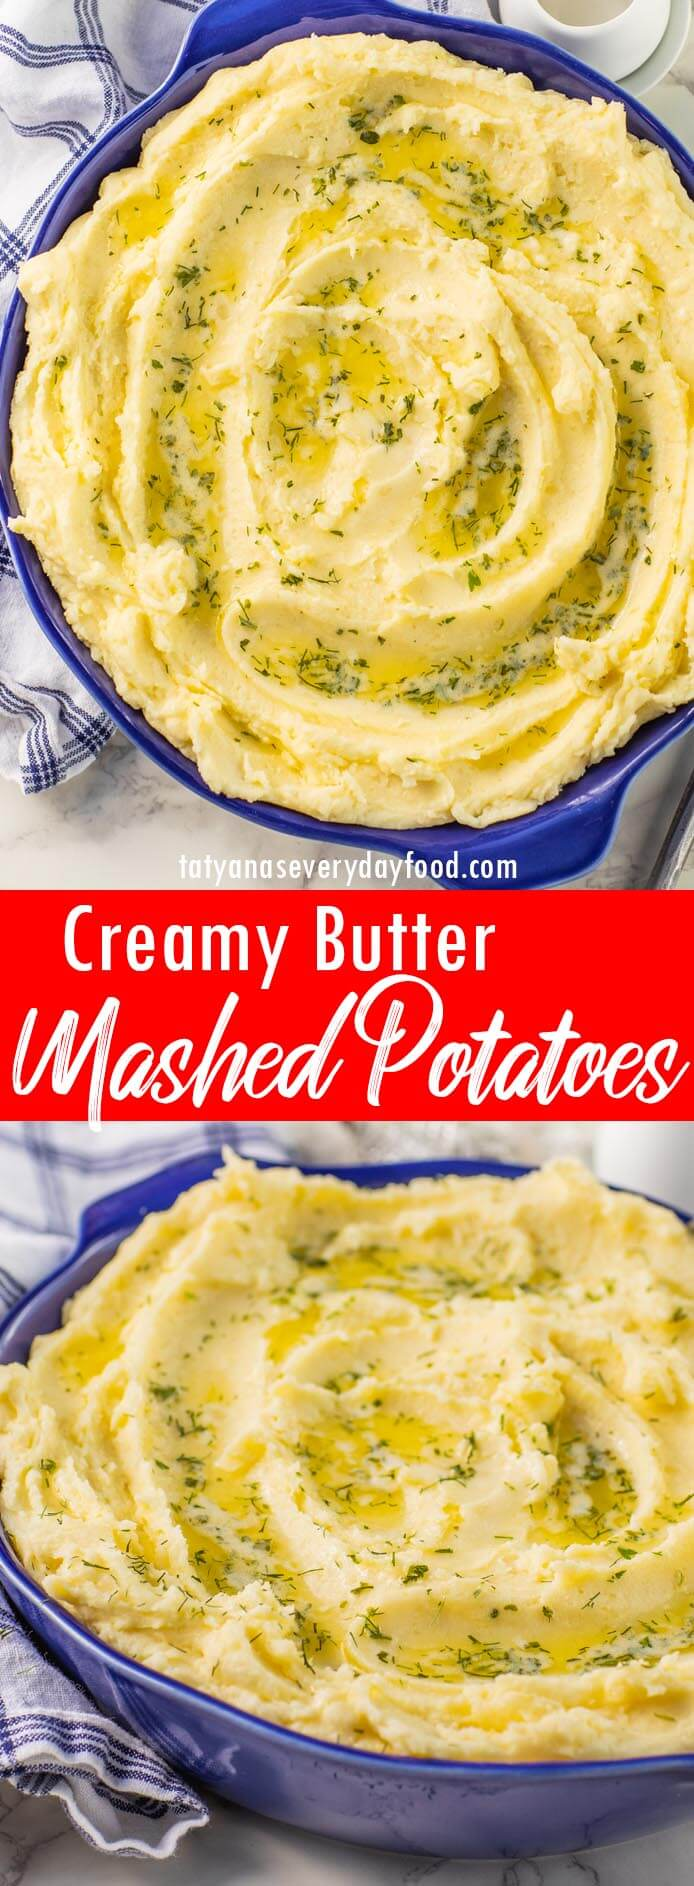 Creamy Butter Mashed Potatoes video recipe